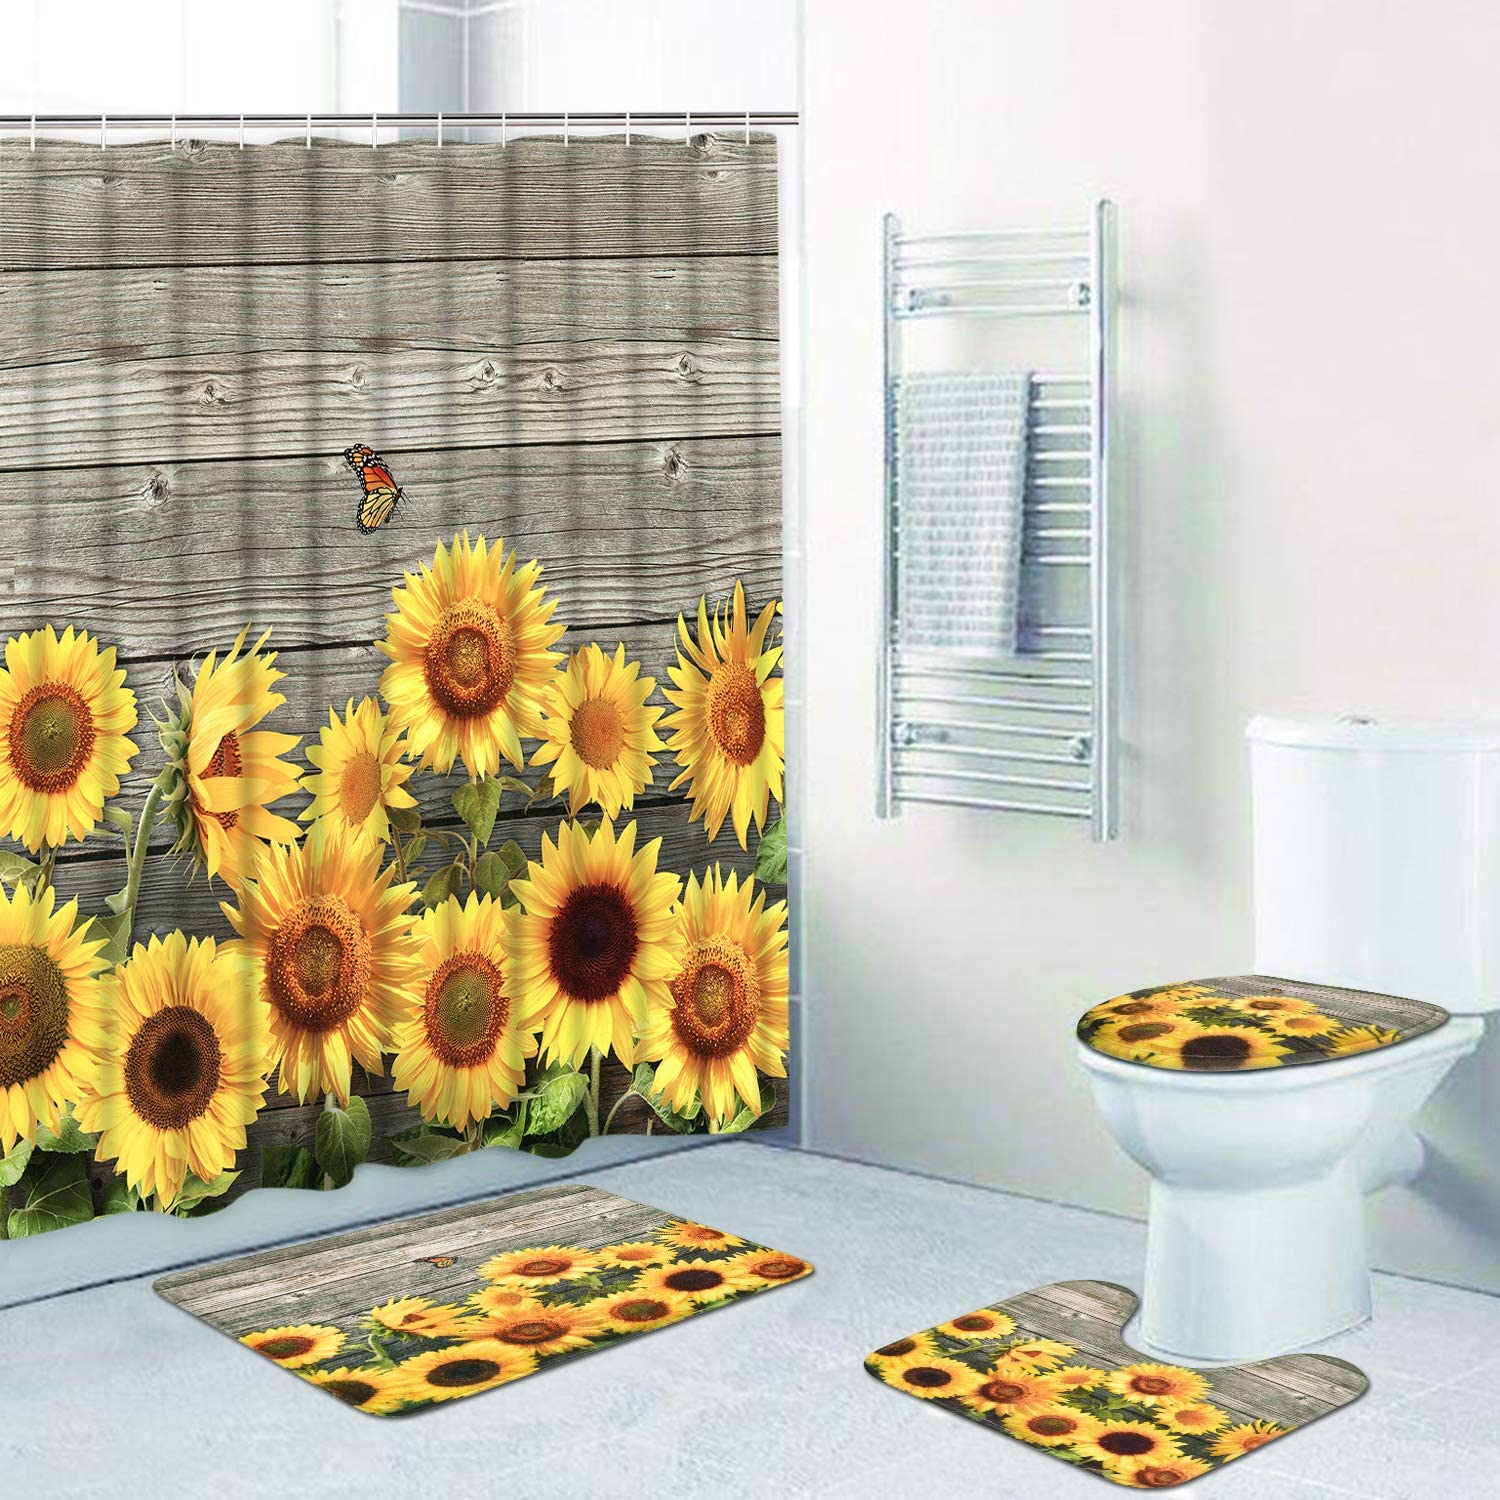 4 Pcs Sunflower Shower Curtain Sets with Non-Slip Rug, Toilet Lid Cover and Bath Mat Wooden Board Shower Curtain with 12 Hooks Waterproof Durable Shower Curtain for Bath Room